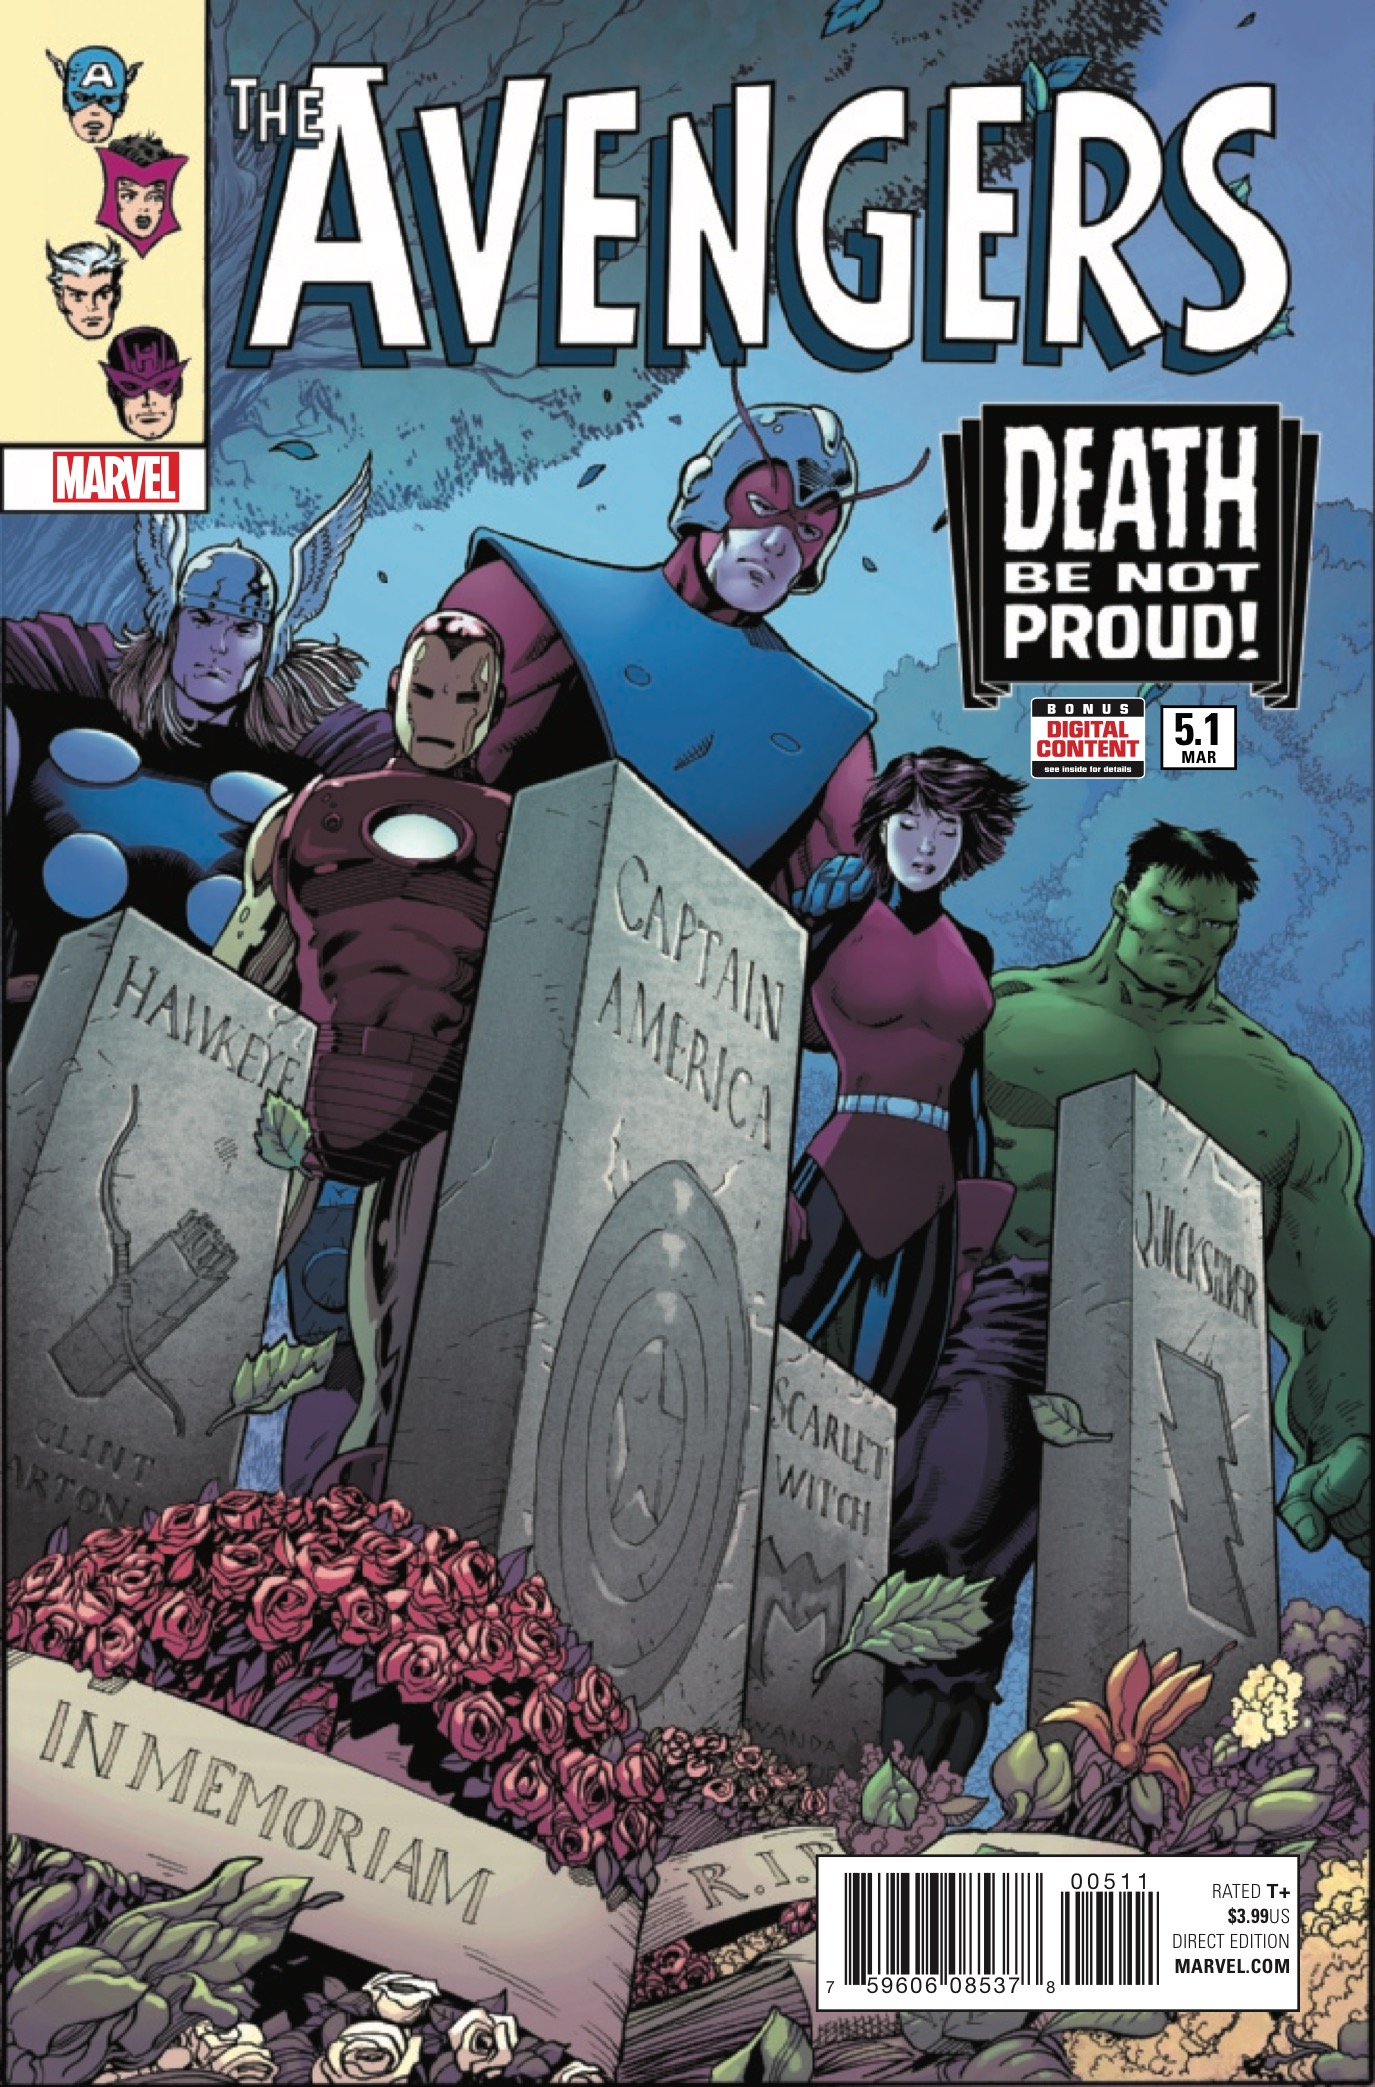 Avengers #5.1 Review